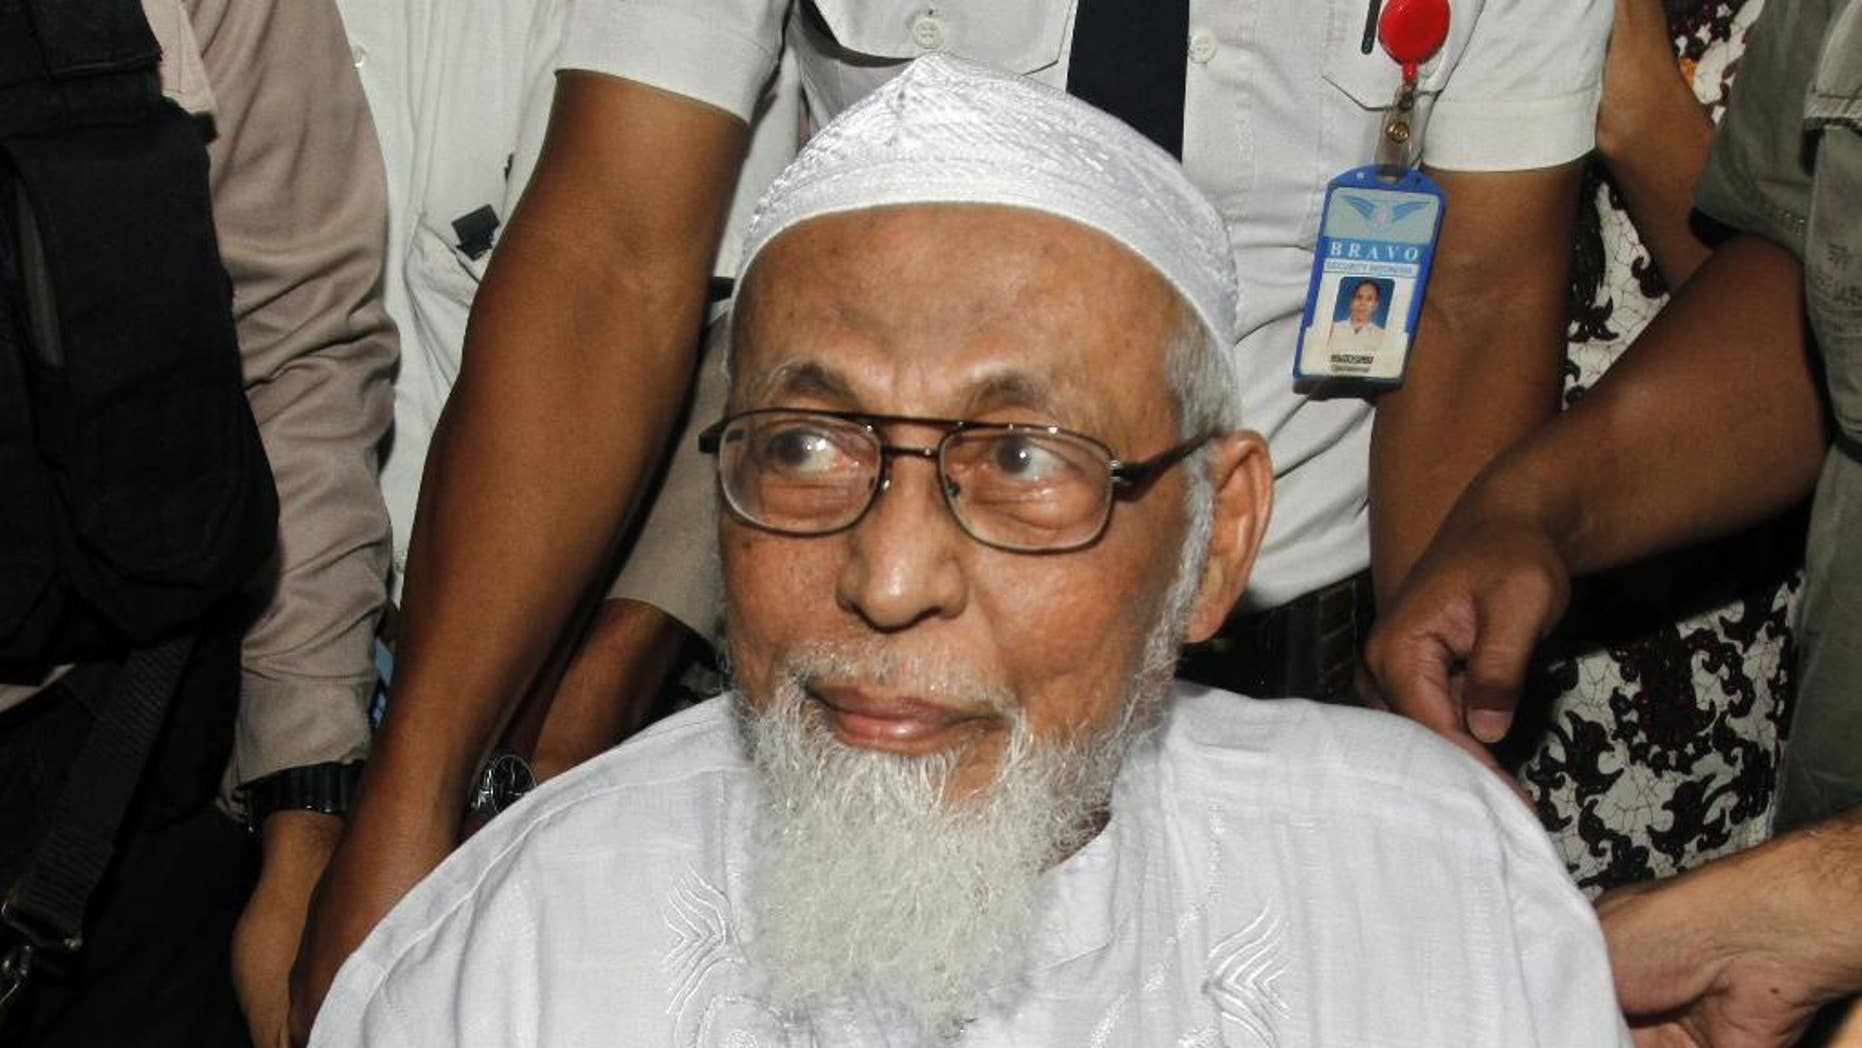 """FILE - In this Wednesday, Feb. 29, 2012 file photo, Indonesian militant cleric Abu Bakar Bashir arrives at a hospital to undergo medical treatment, in Jakarta, Indonesia. A lawyer for the spiritual leader of the militants who carried out the 2002 Bali bombings urges Indonesian authorities to end his """"inhumane"""" treatment in prison, saying that Bashir has been confined to a tiny isolation cell in the wake of the Jan. 14 suicide bombings in the Indonesian capital Jakarta. (AP Photo/Tatan Syuflana, File)"""